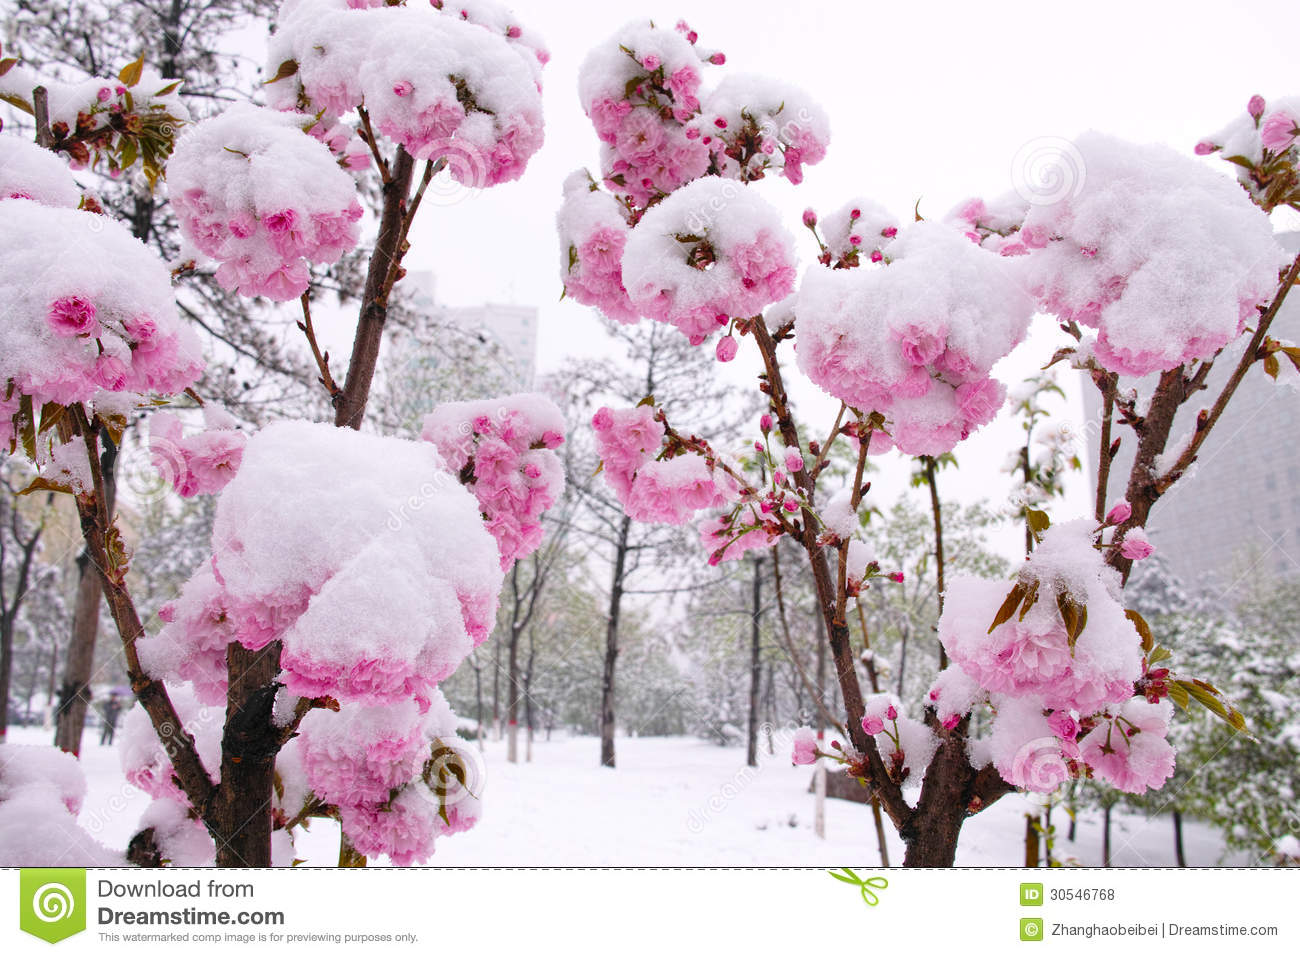 Flower and snow stock photo. Image of cold, frigid, bloom